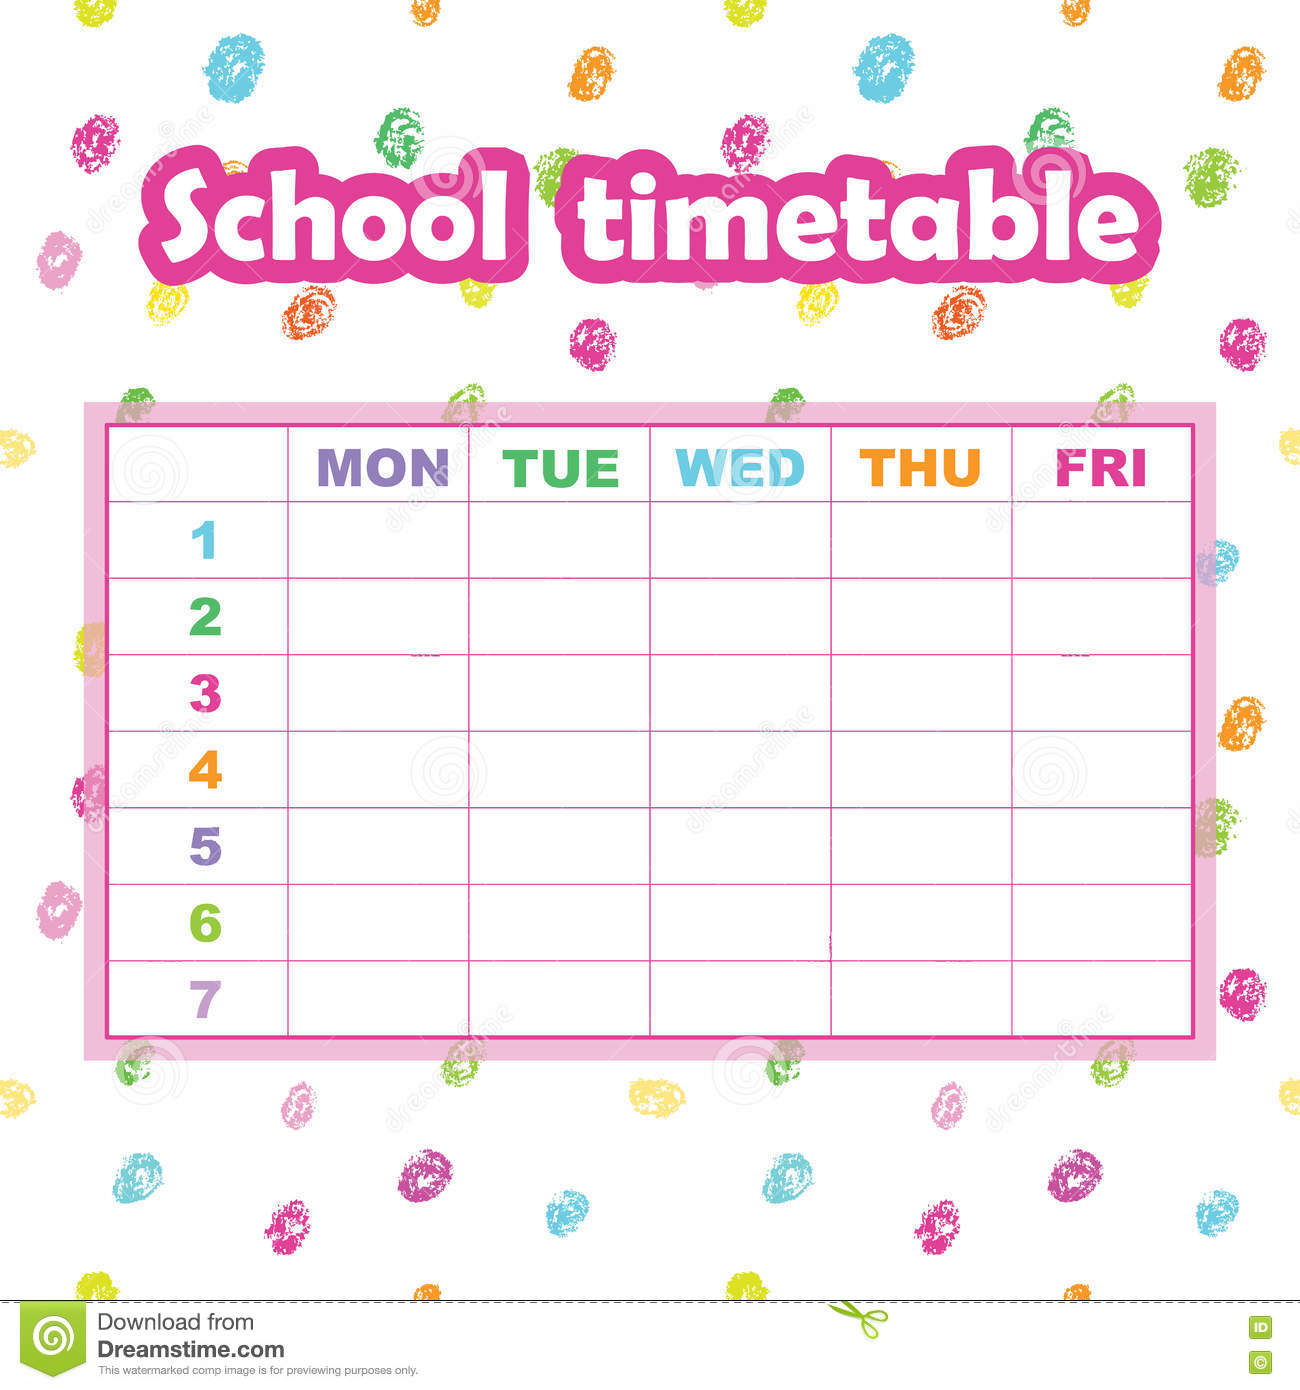 School Timetable Template For Students And Pupils Abstract Scri – Timetable Template School